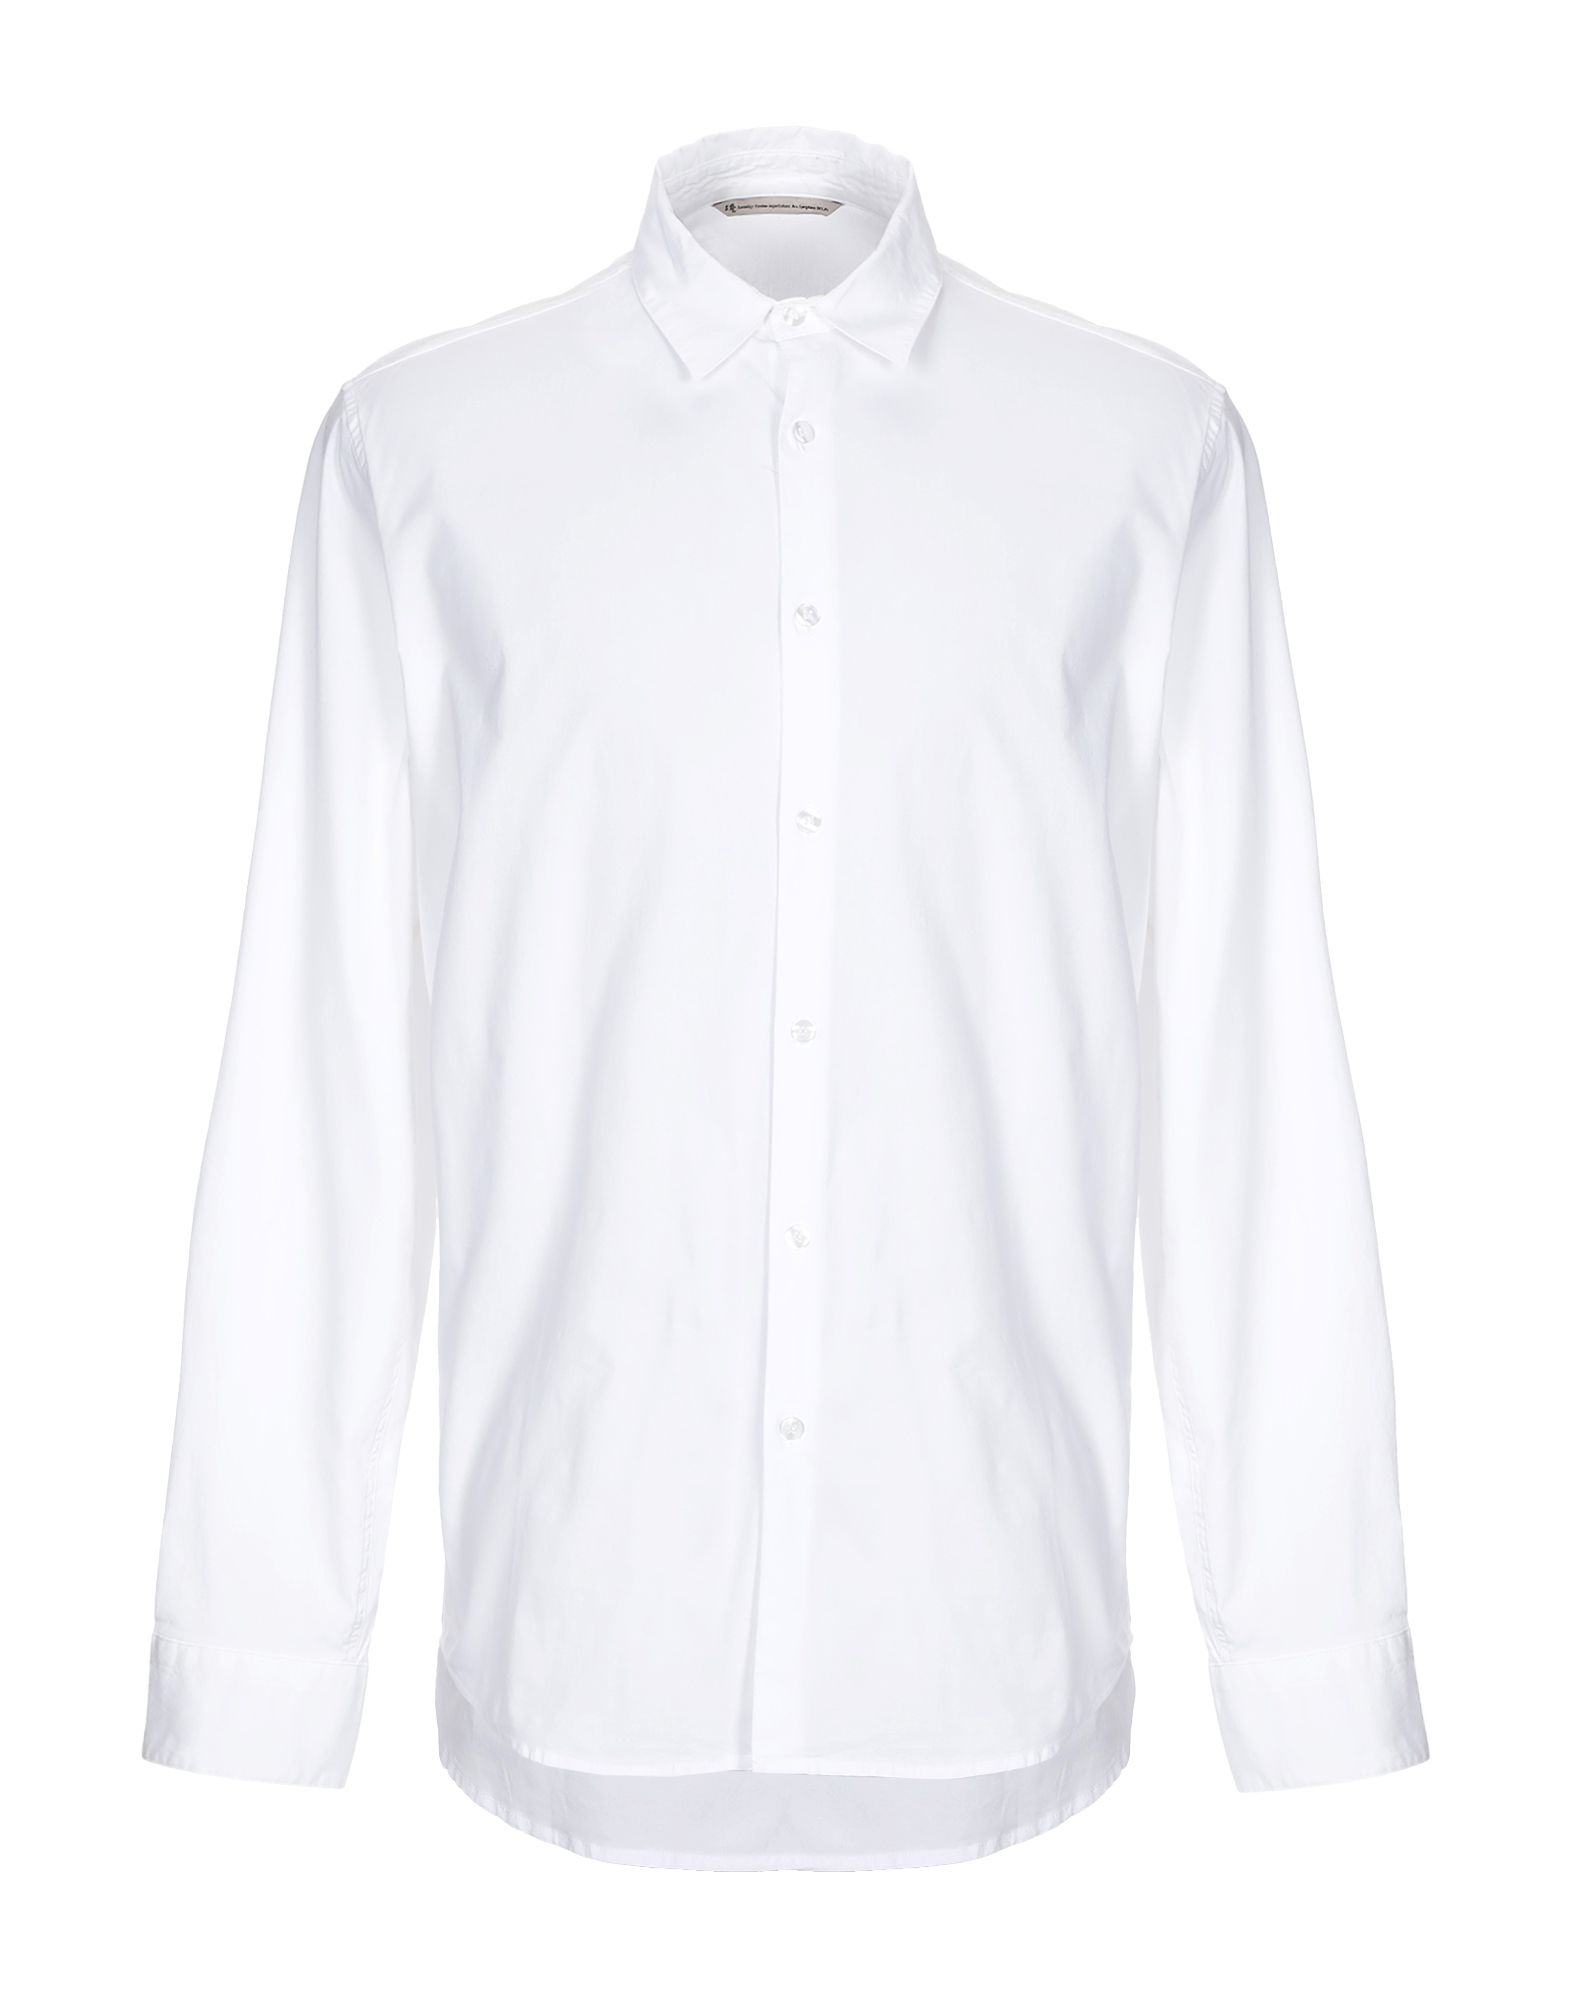 Novemb3r Solid Color Shirt In White